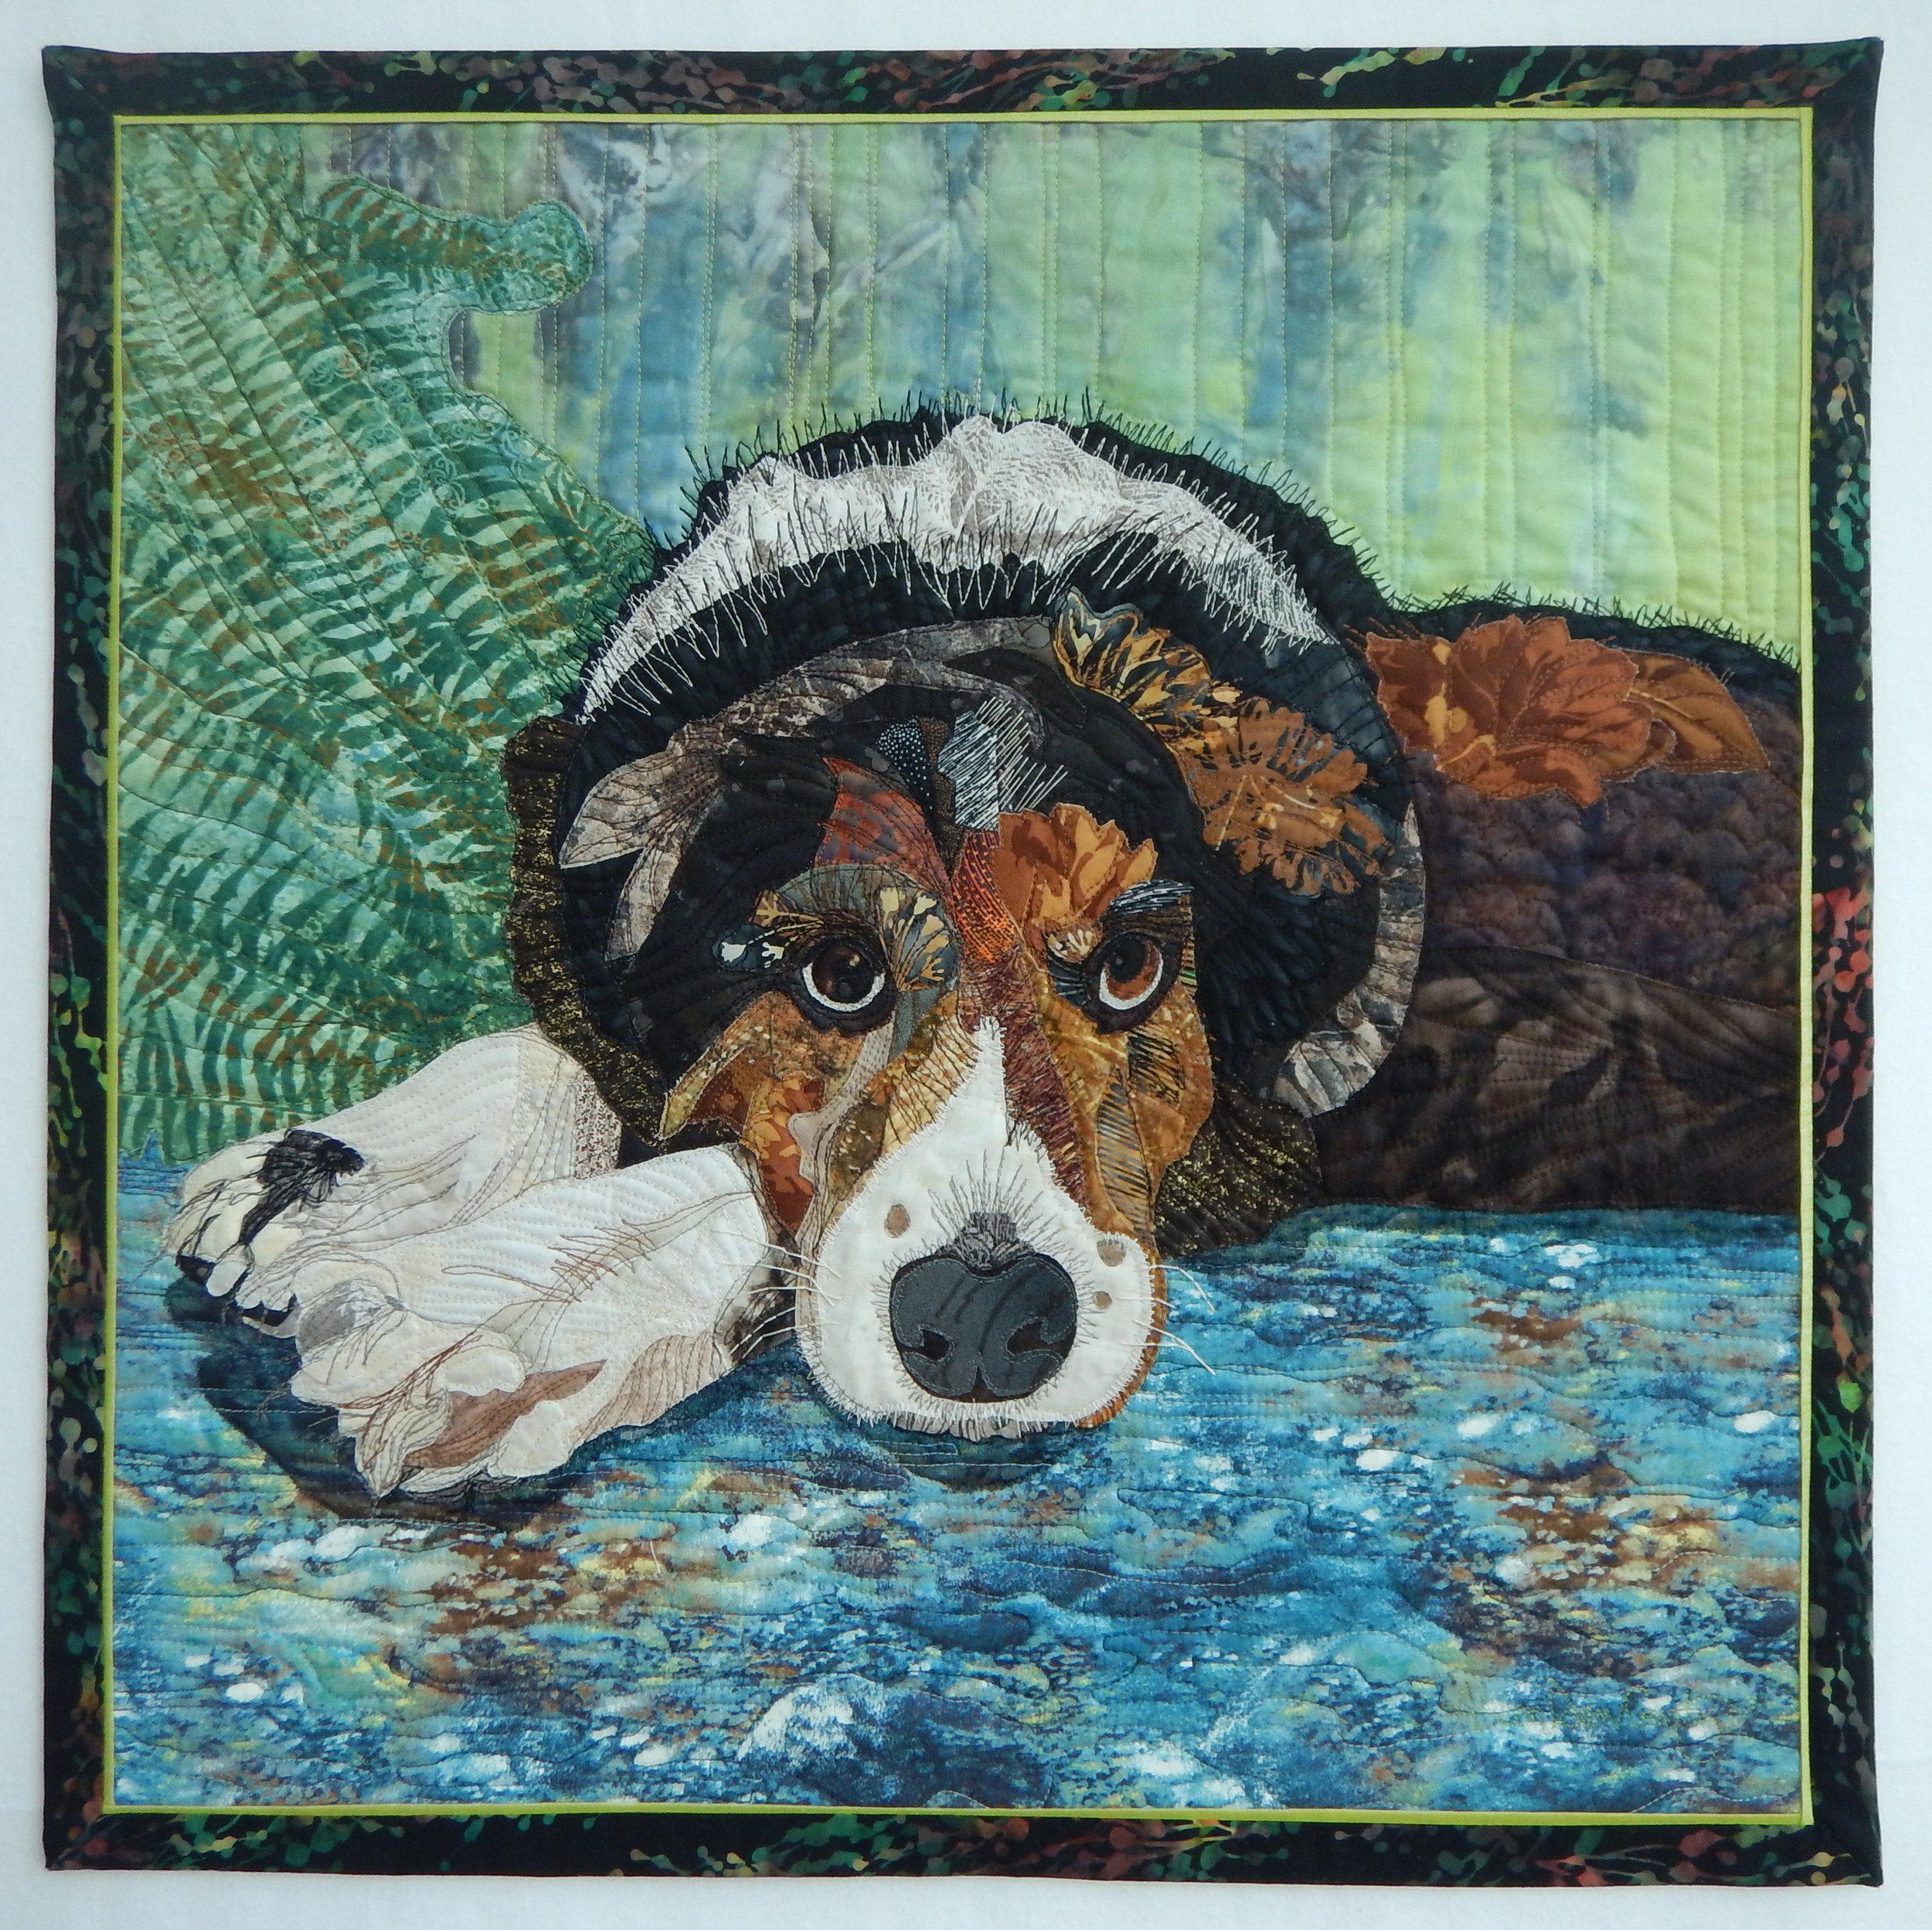 "Leo - 23"" x 23""Accepted into the Canadian Quilters' Association National Juried Show in 2016Private Collection - Calgary, ABWith much meaning and gratitude this portrait was brought to life. A physician and friend was intrigued with my previous work using fabric as an art medium and she asked me to make a portrait of her Border Collie, Leo. He is a beloved family pet who is in his twilight years. It was my goal to communicate his loyal and gentle spirit in fabric. For me it comes alive when I get the eyes right!"